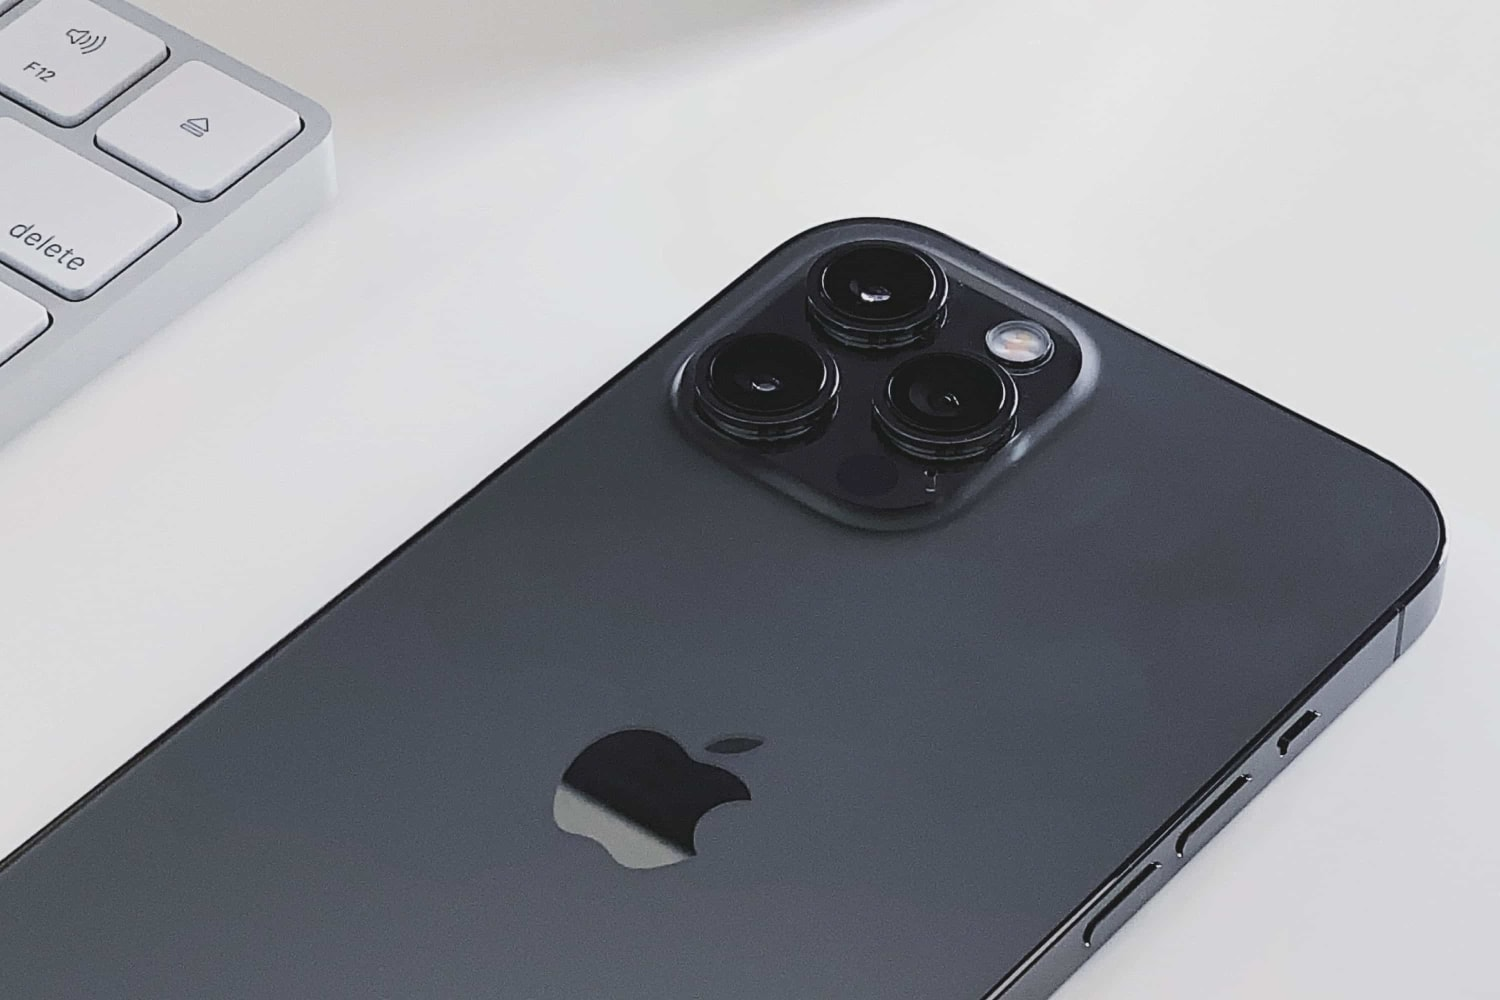 apple-forging-ahead-with-folded-camera-technology-seeking-suppliers-20201130-1